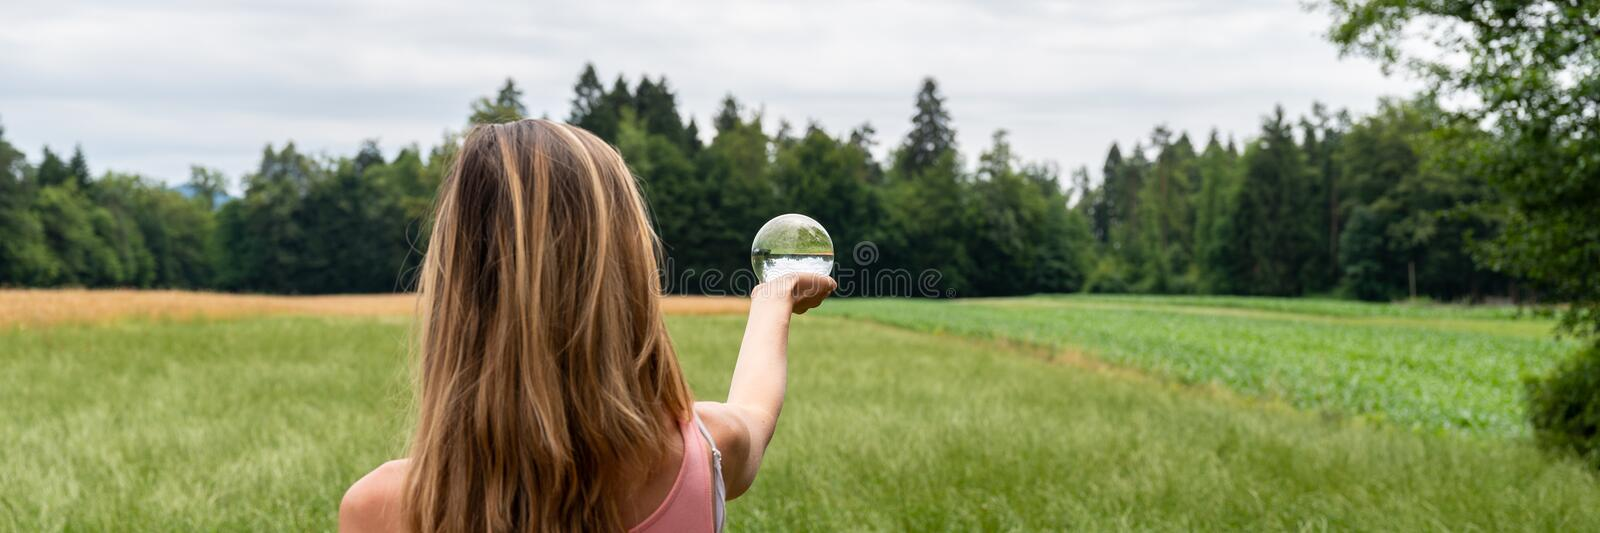 Woman standing in nature holding crystal ball royalty free stock image